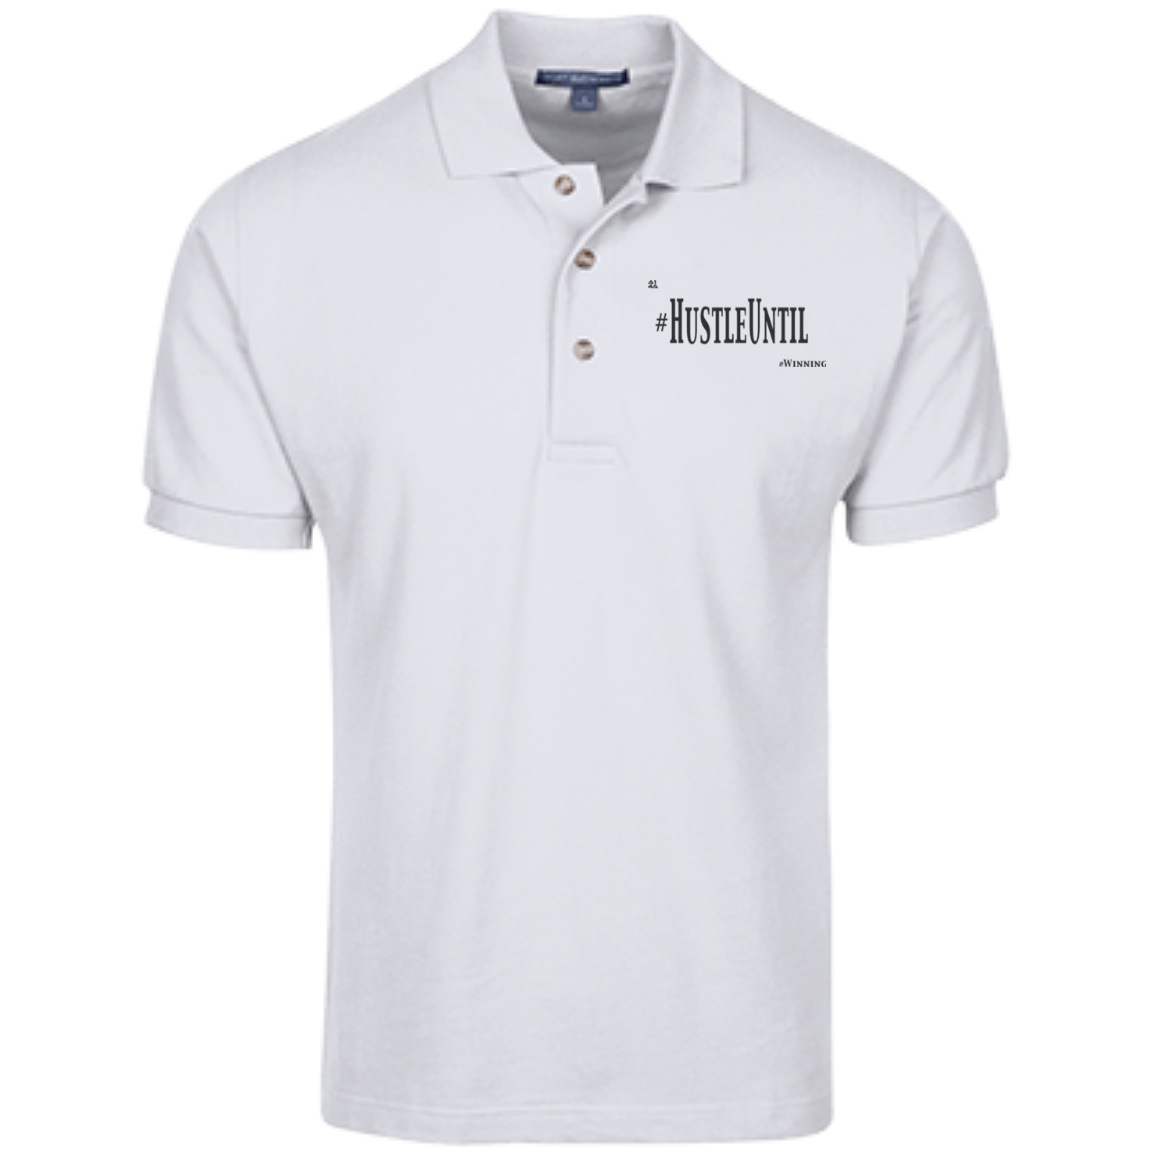 Hustle Until - Port Authority Cotton Pique Knit Polo